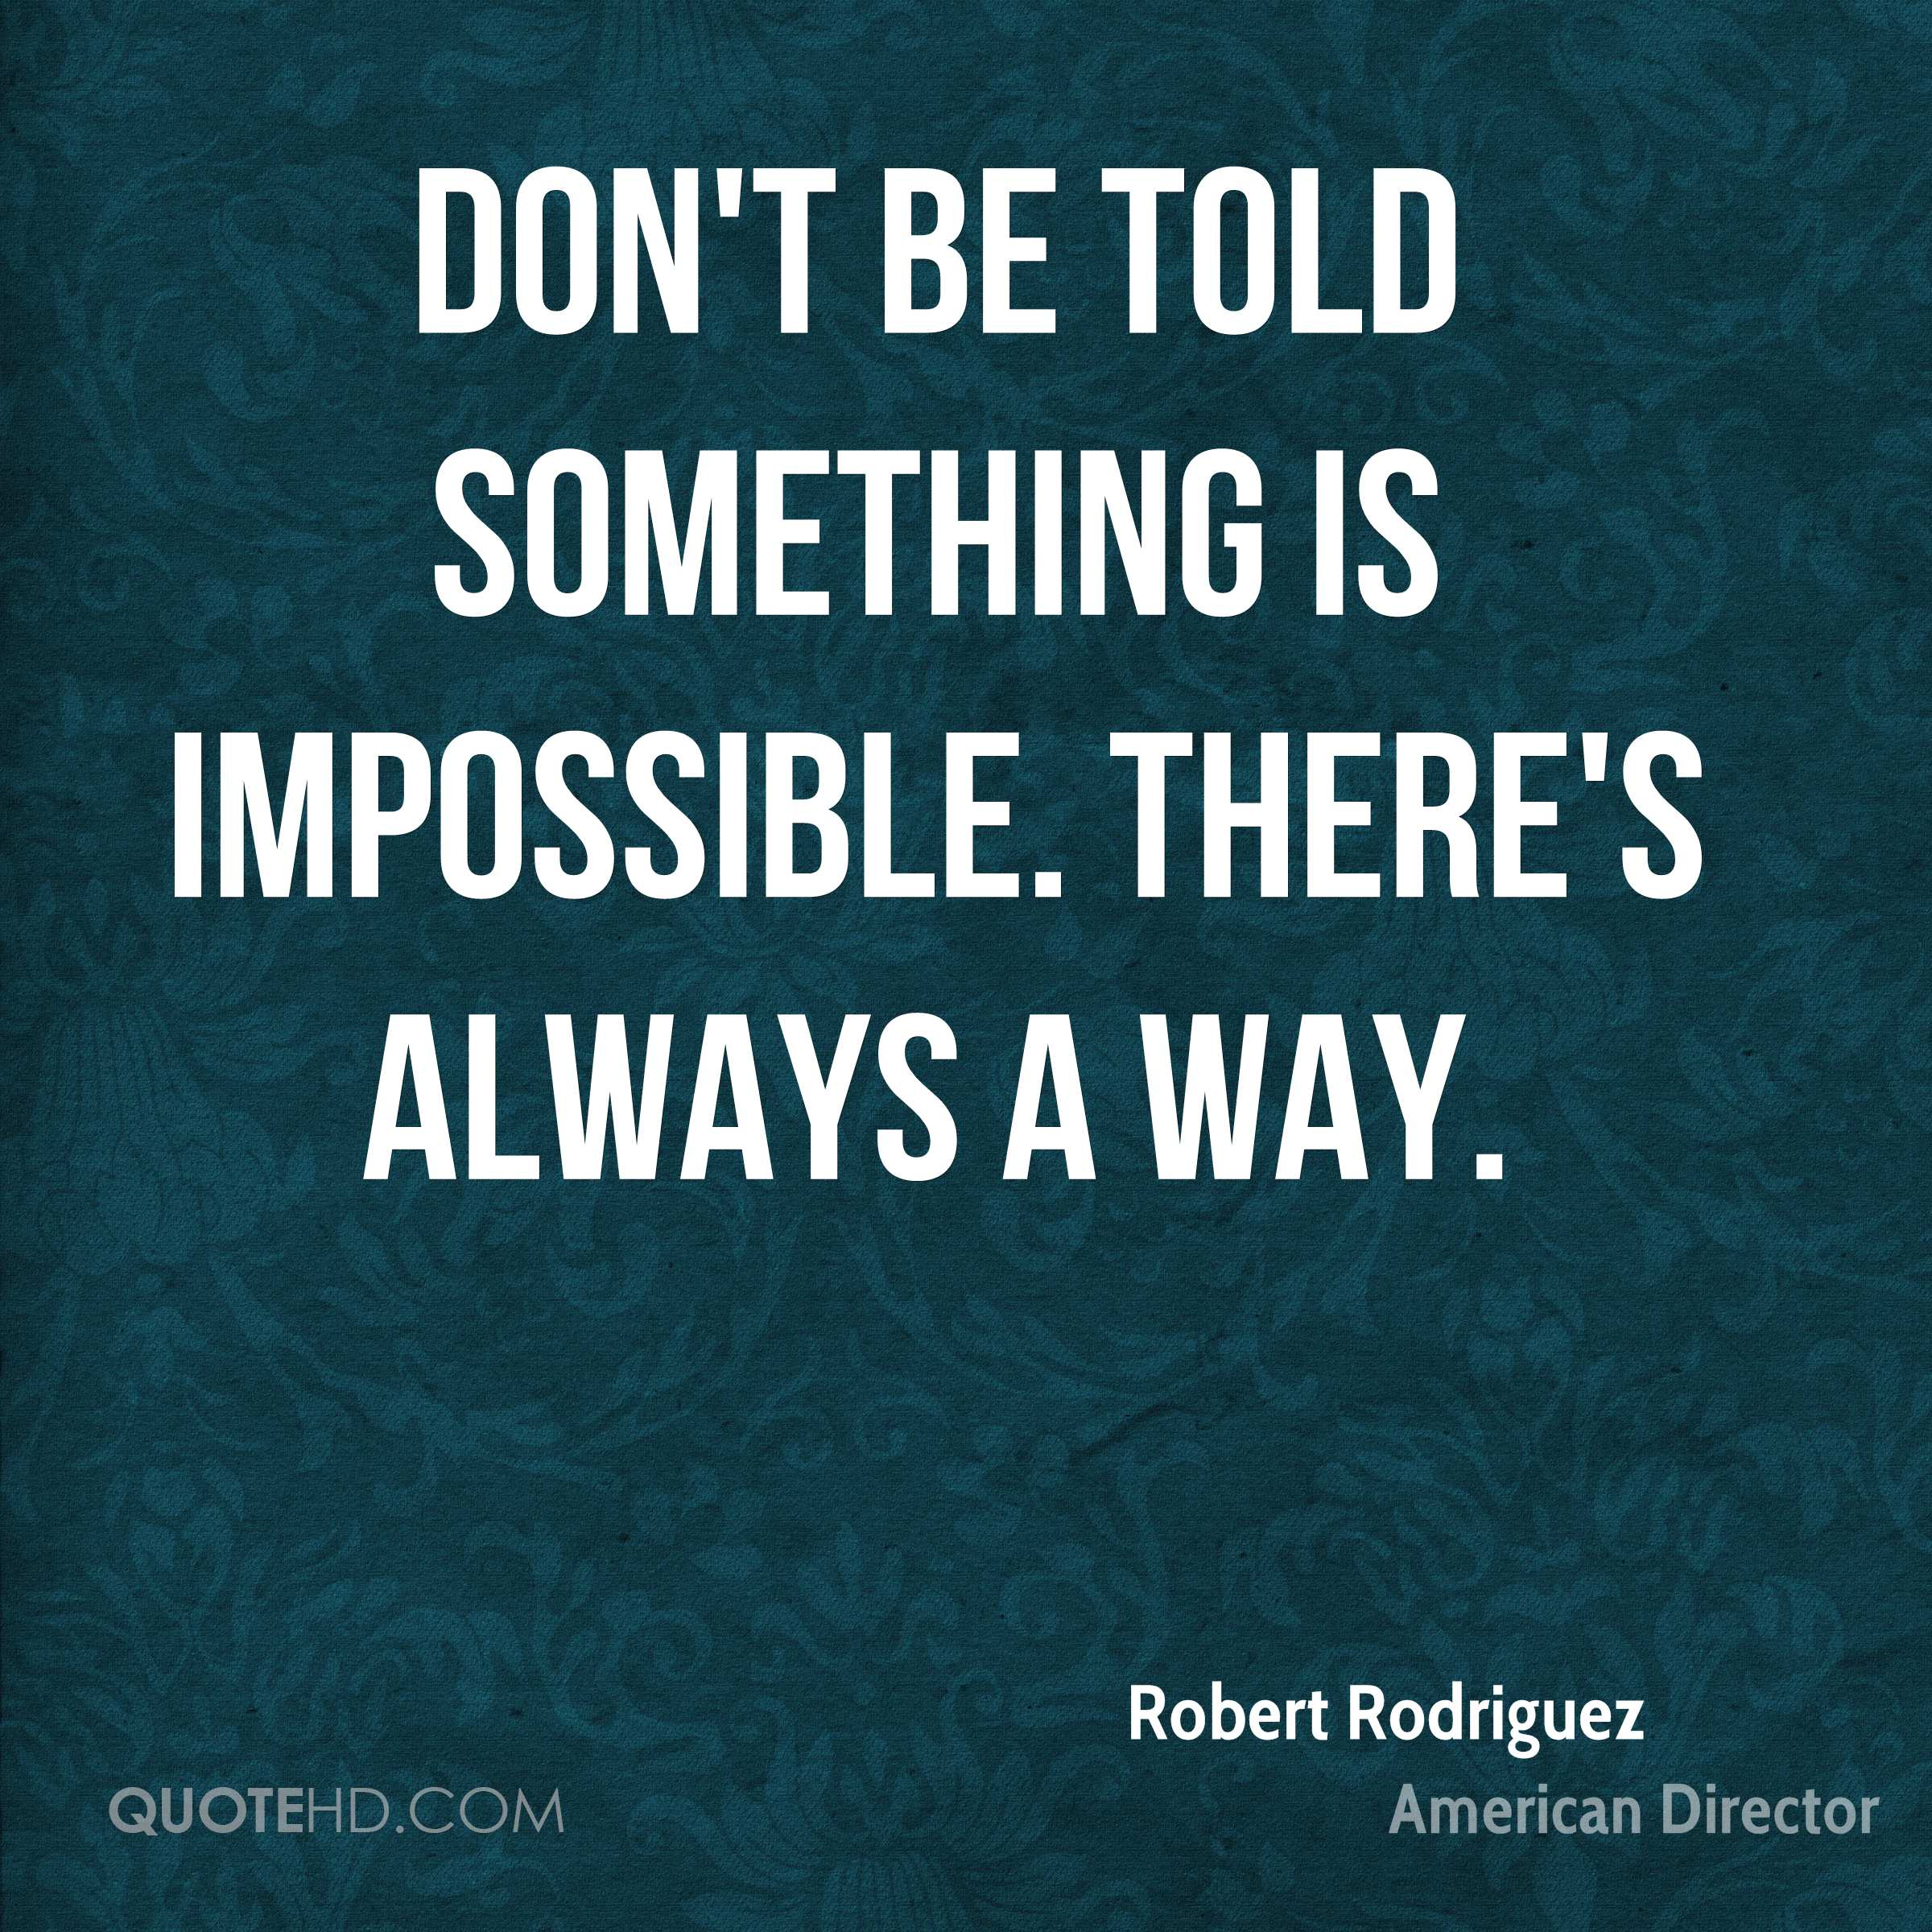 Don't be told something is impossible. There's always a way.